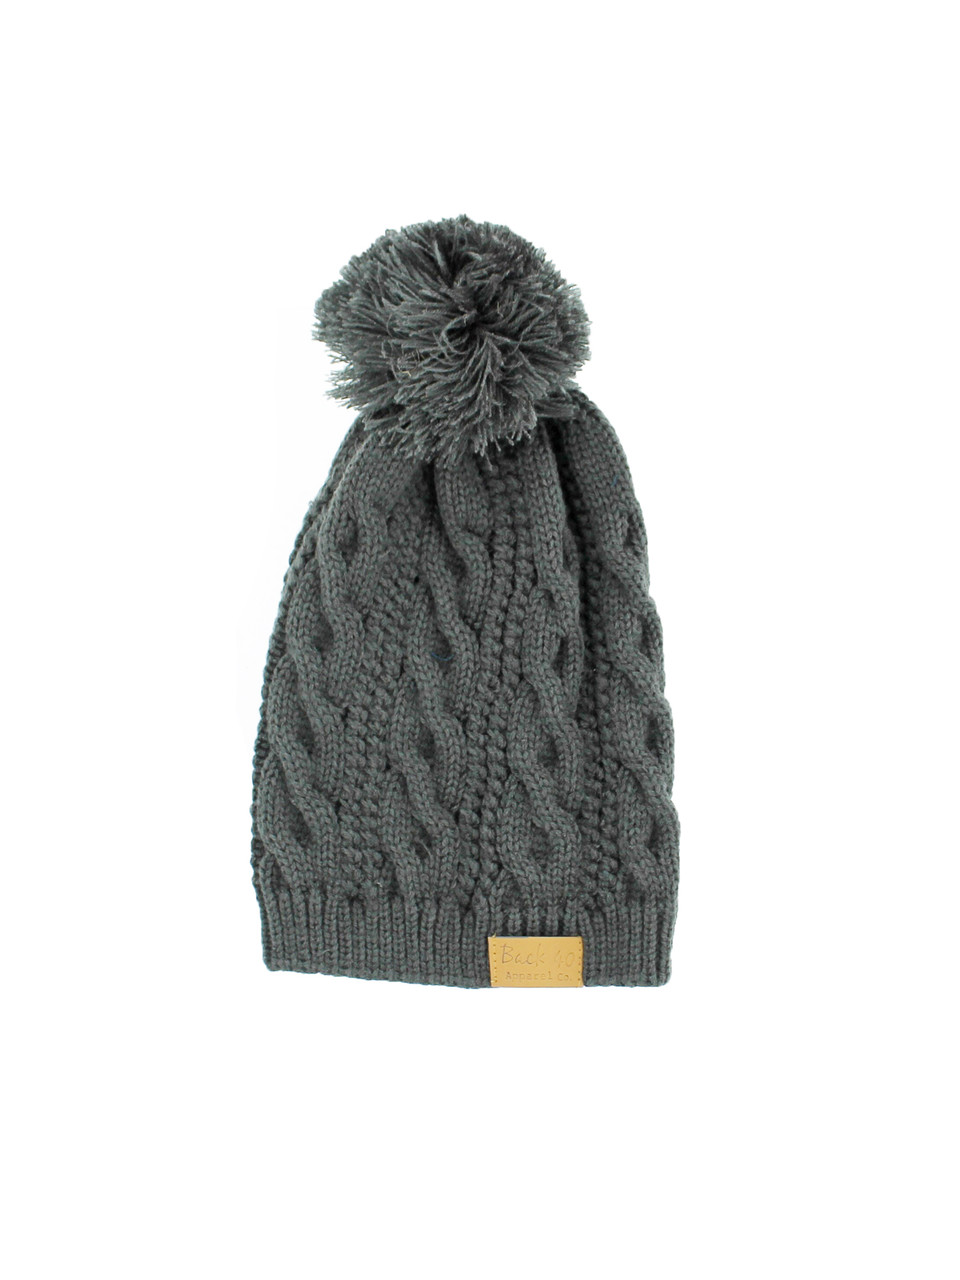 824c76d7759 Cable Pom Pom Beanie Unisex Charcoal Thick   Warm Knit Winter Hat Cap by  Back 40